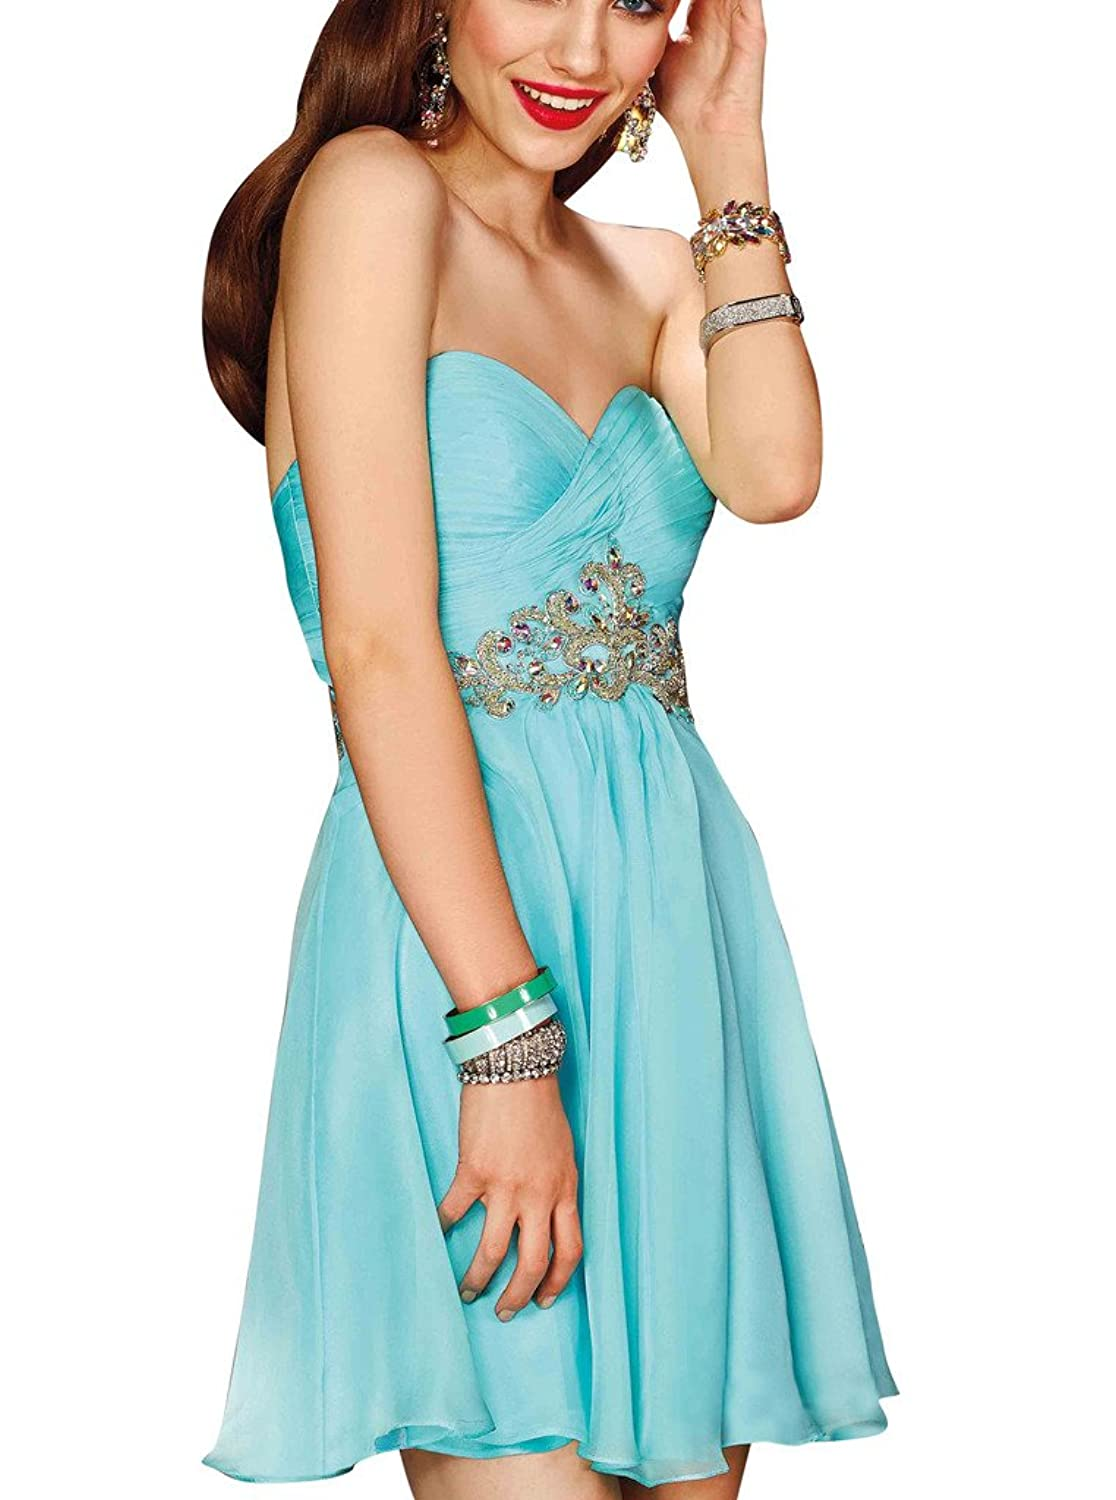 A-line Girl's Homecoming Dresses Open Back Beaded Short Party Gowns